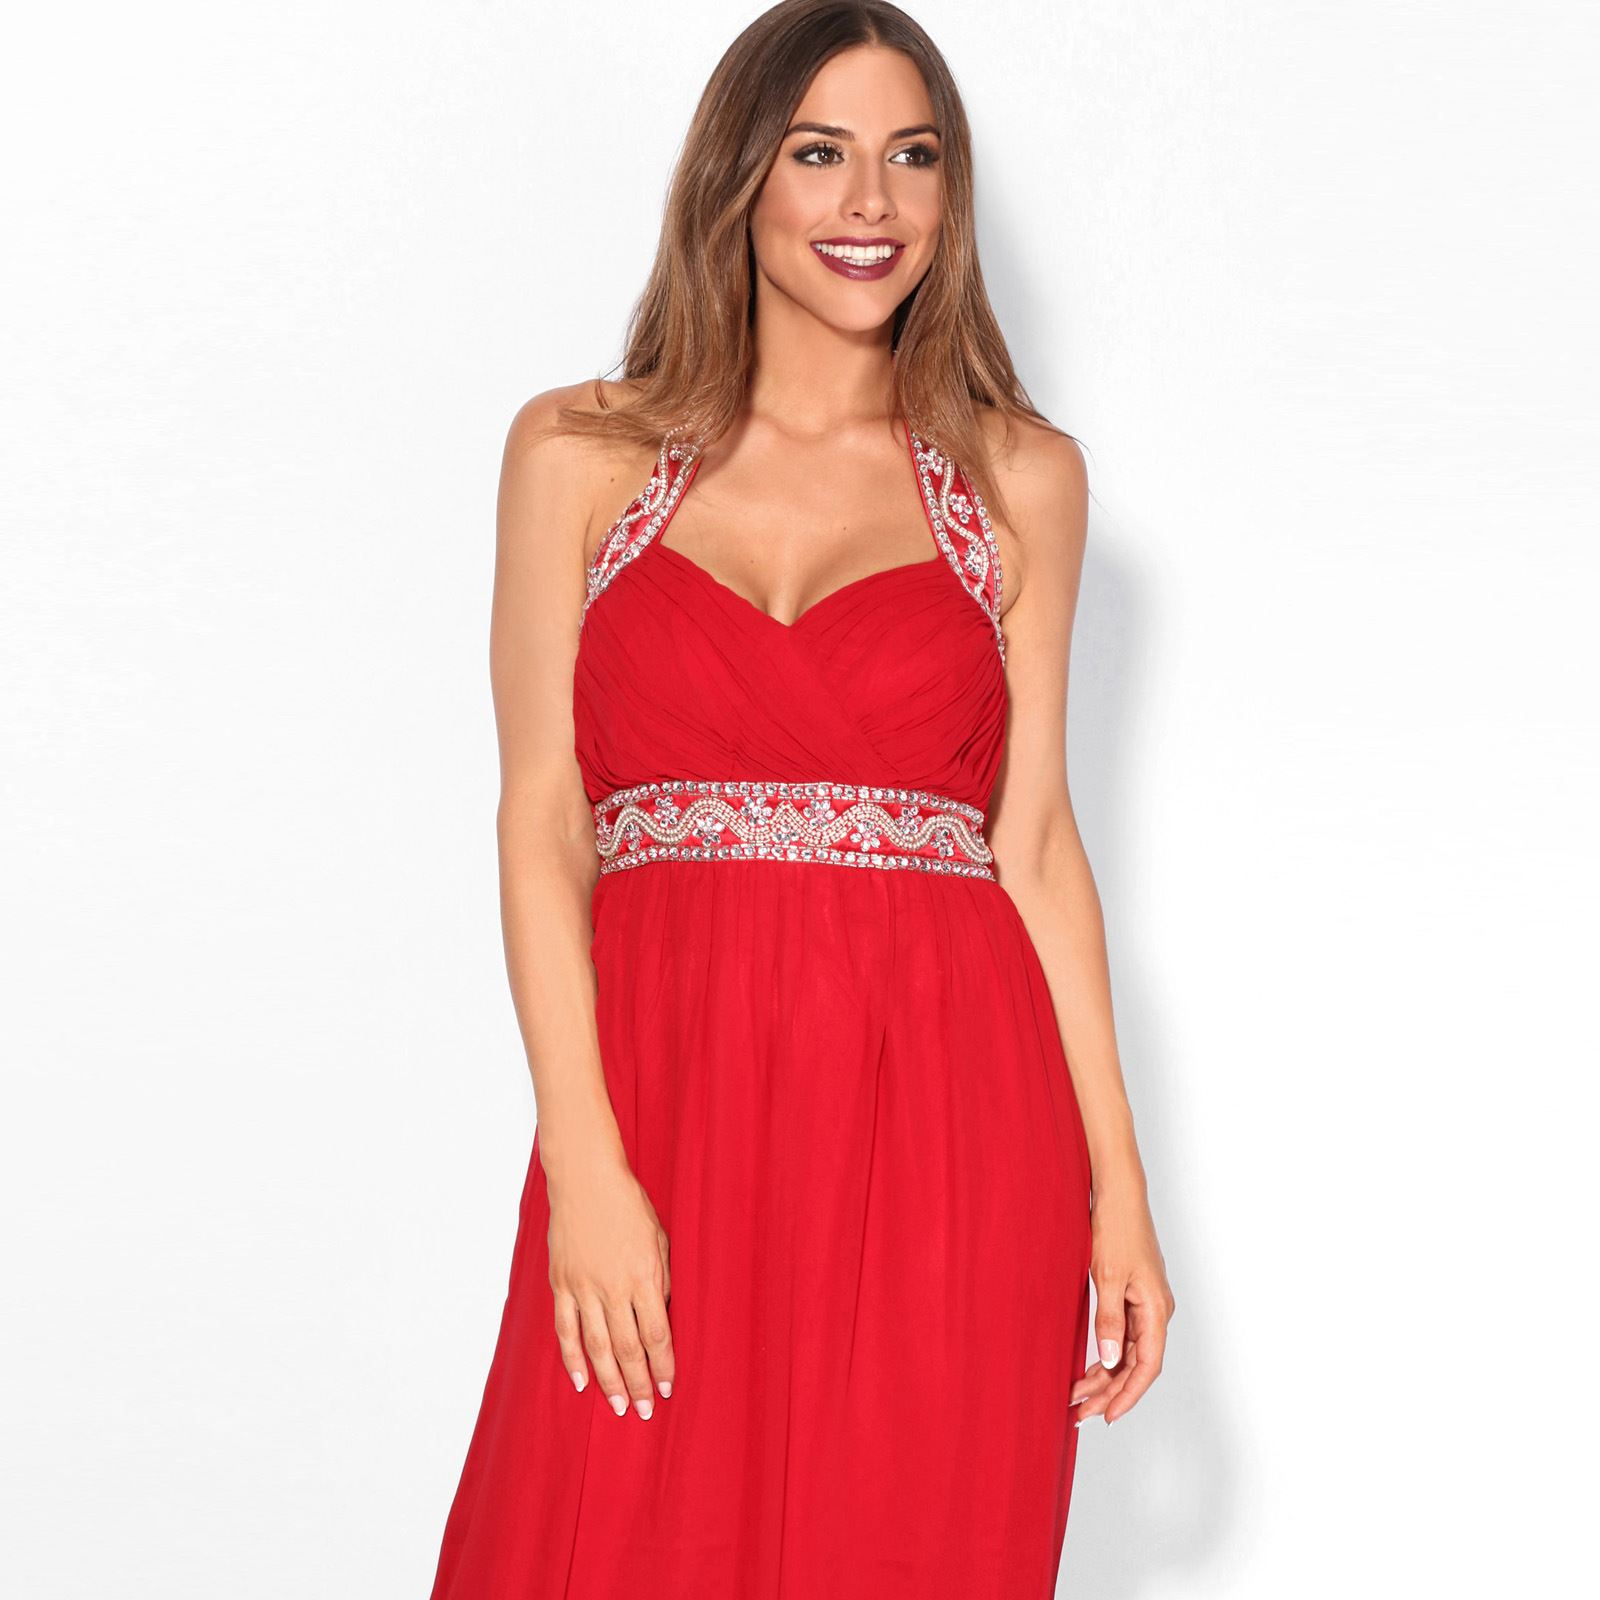 Women-Formal-Diamante-Wedding-Cocktail-Dress-Long-Ball-Gown-Prom-Maxi-Party-8-18 thumbnail 22